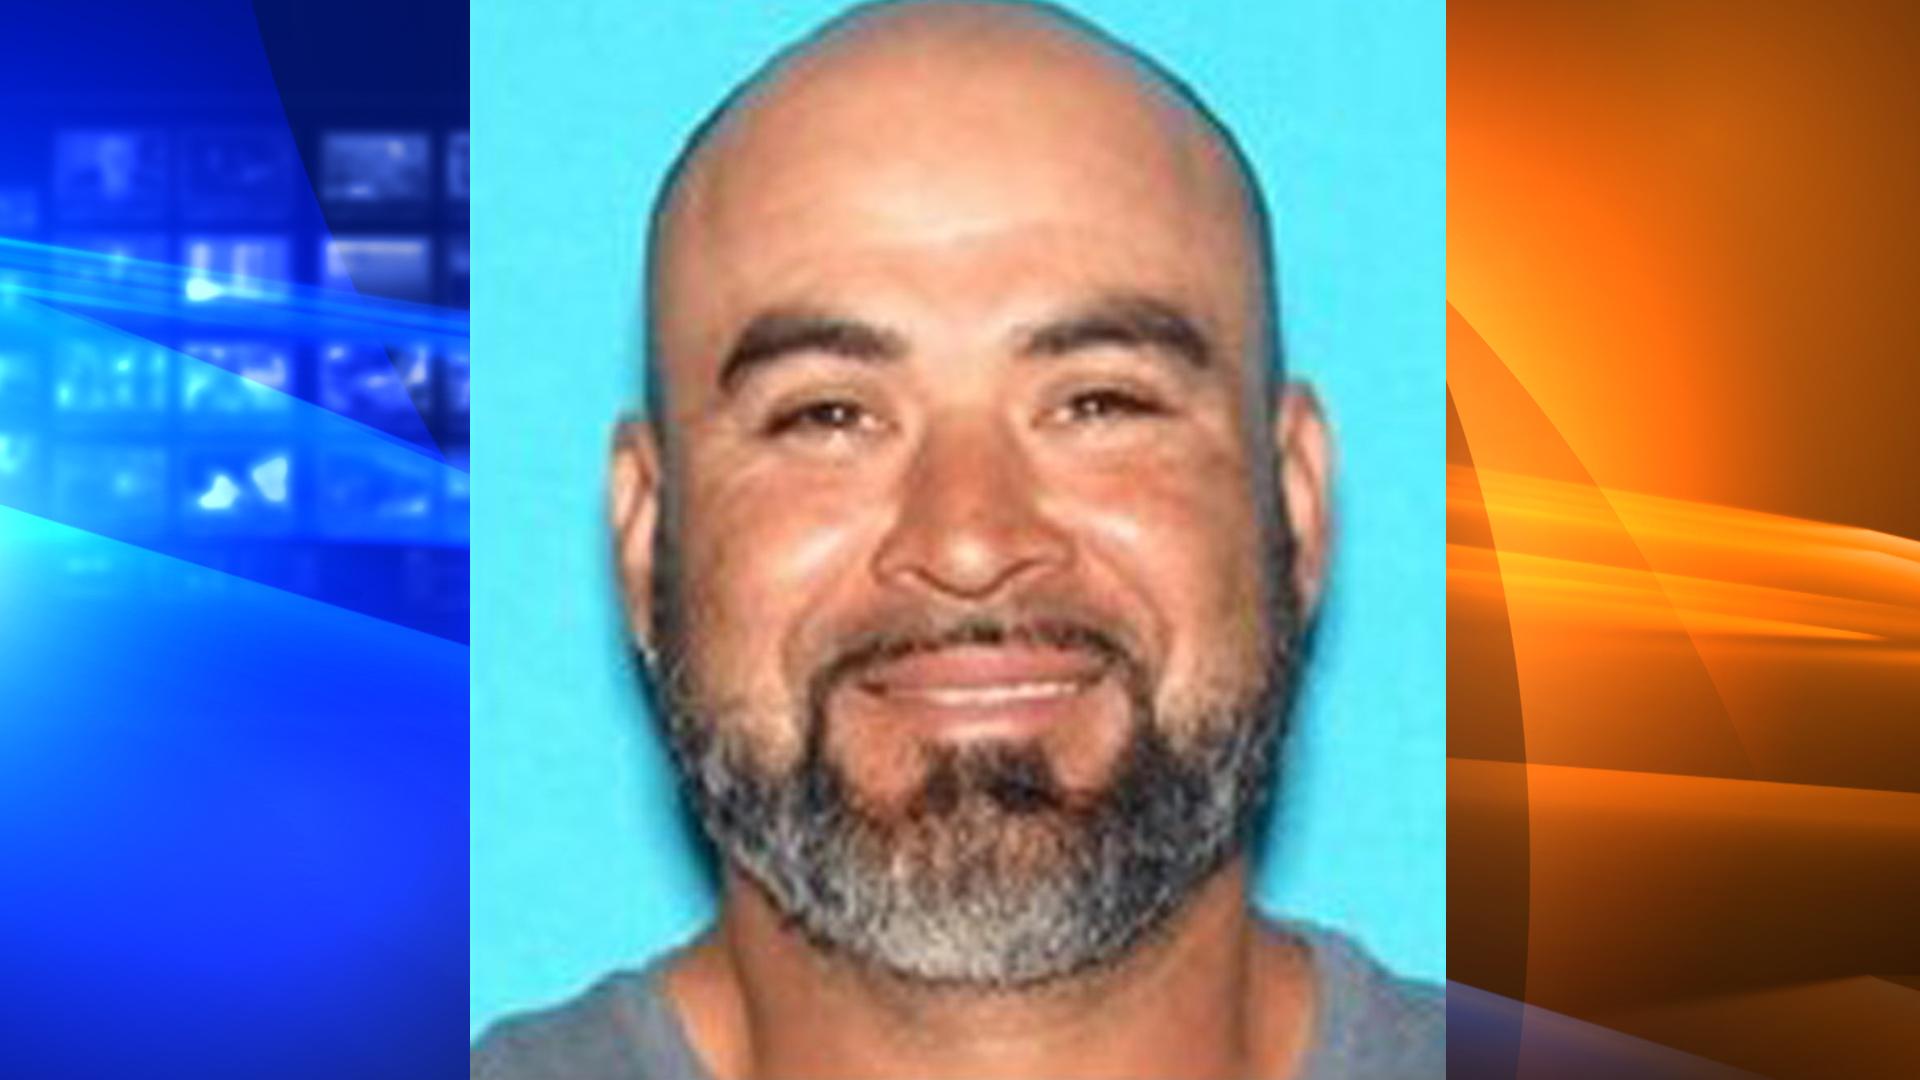 Roman Cerratos is seen in a photo released by the Los Angeles County Sheriff's Department on April 19, 2019.